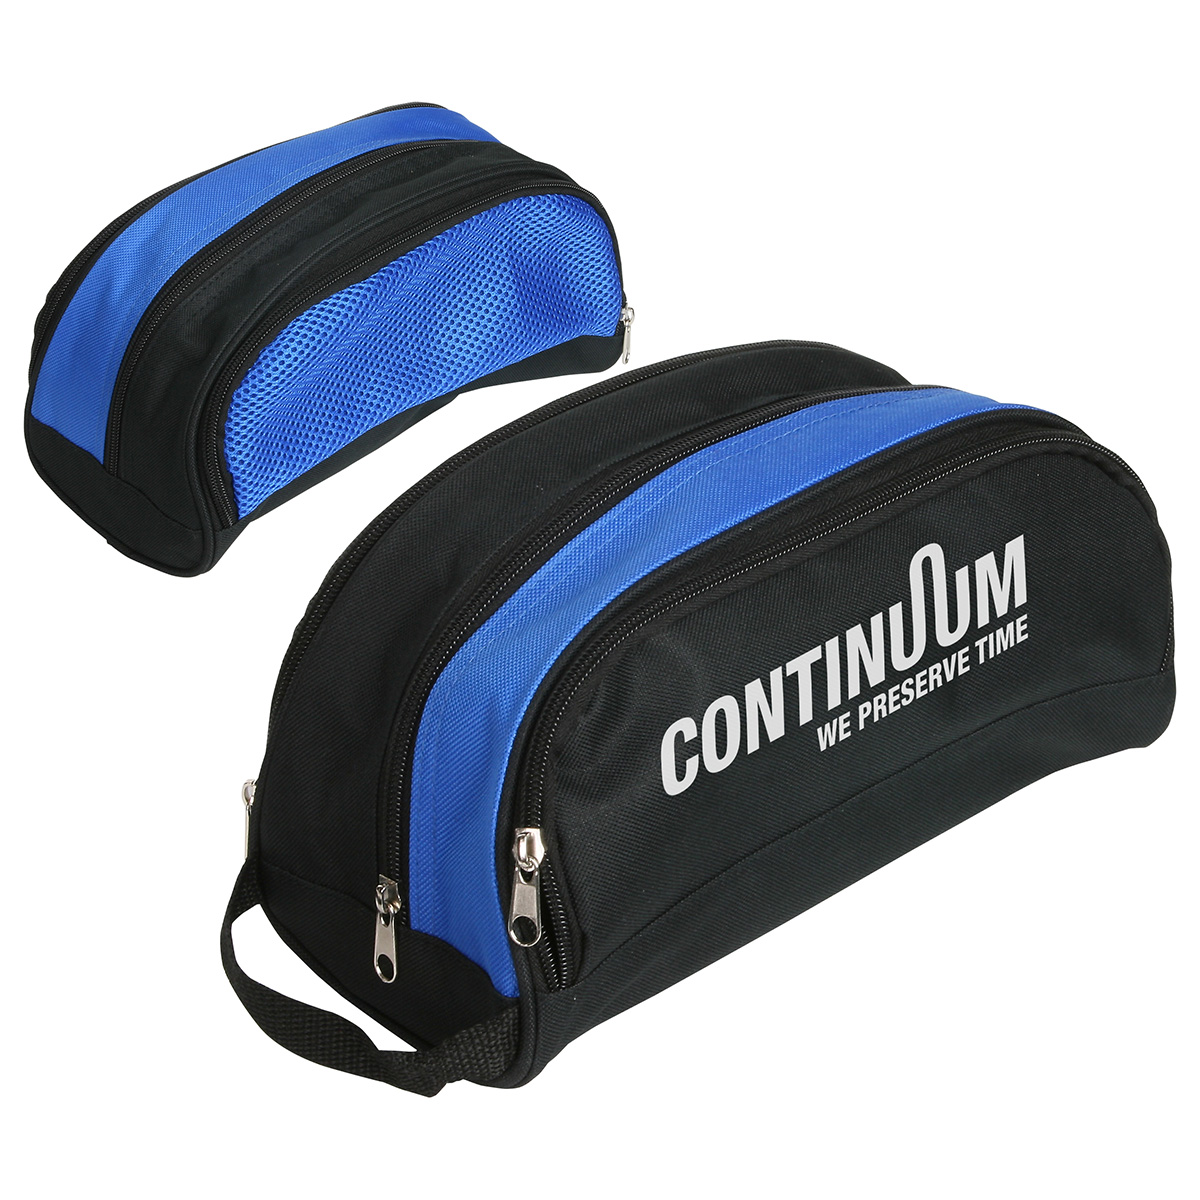 Coastal Toiletry Bag, WBA-CT11 - 1 Colour Imprint